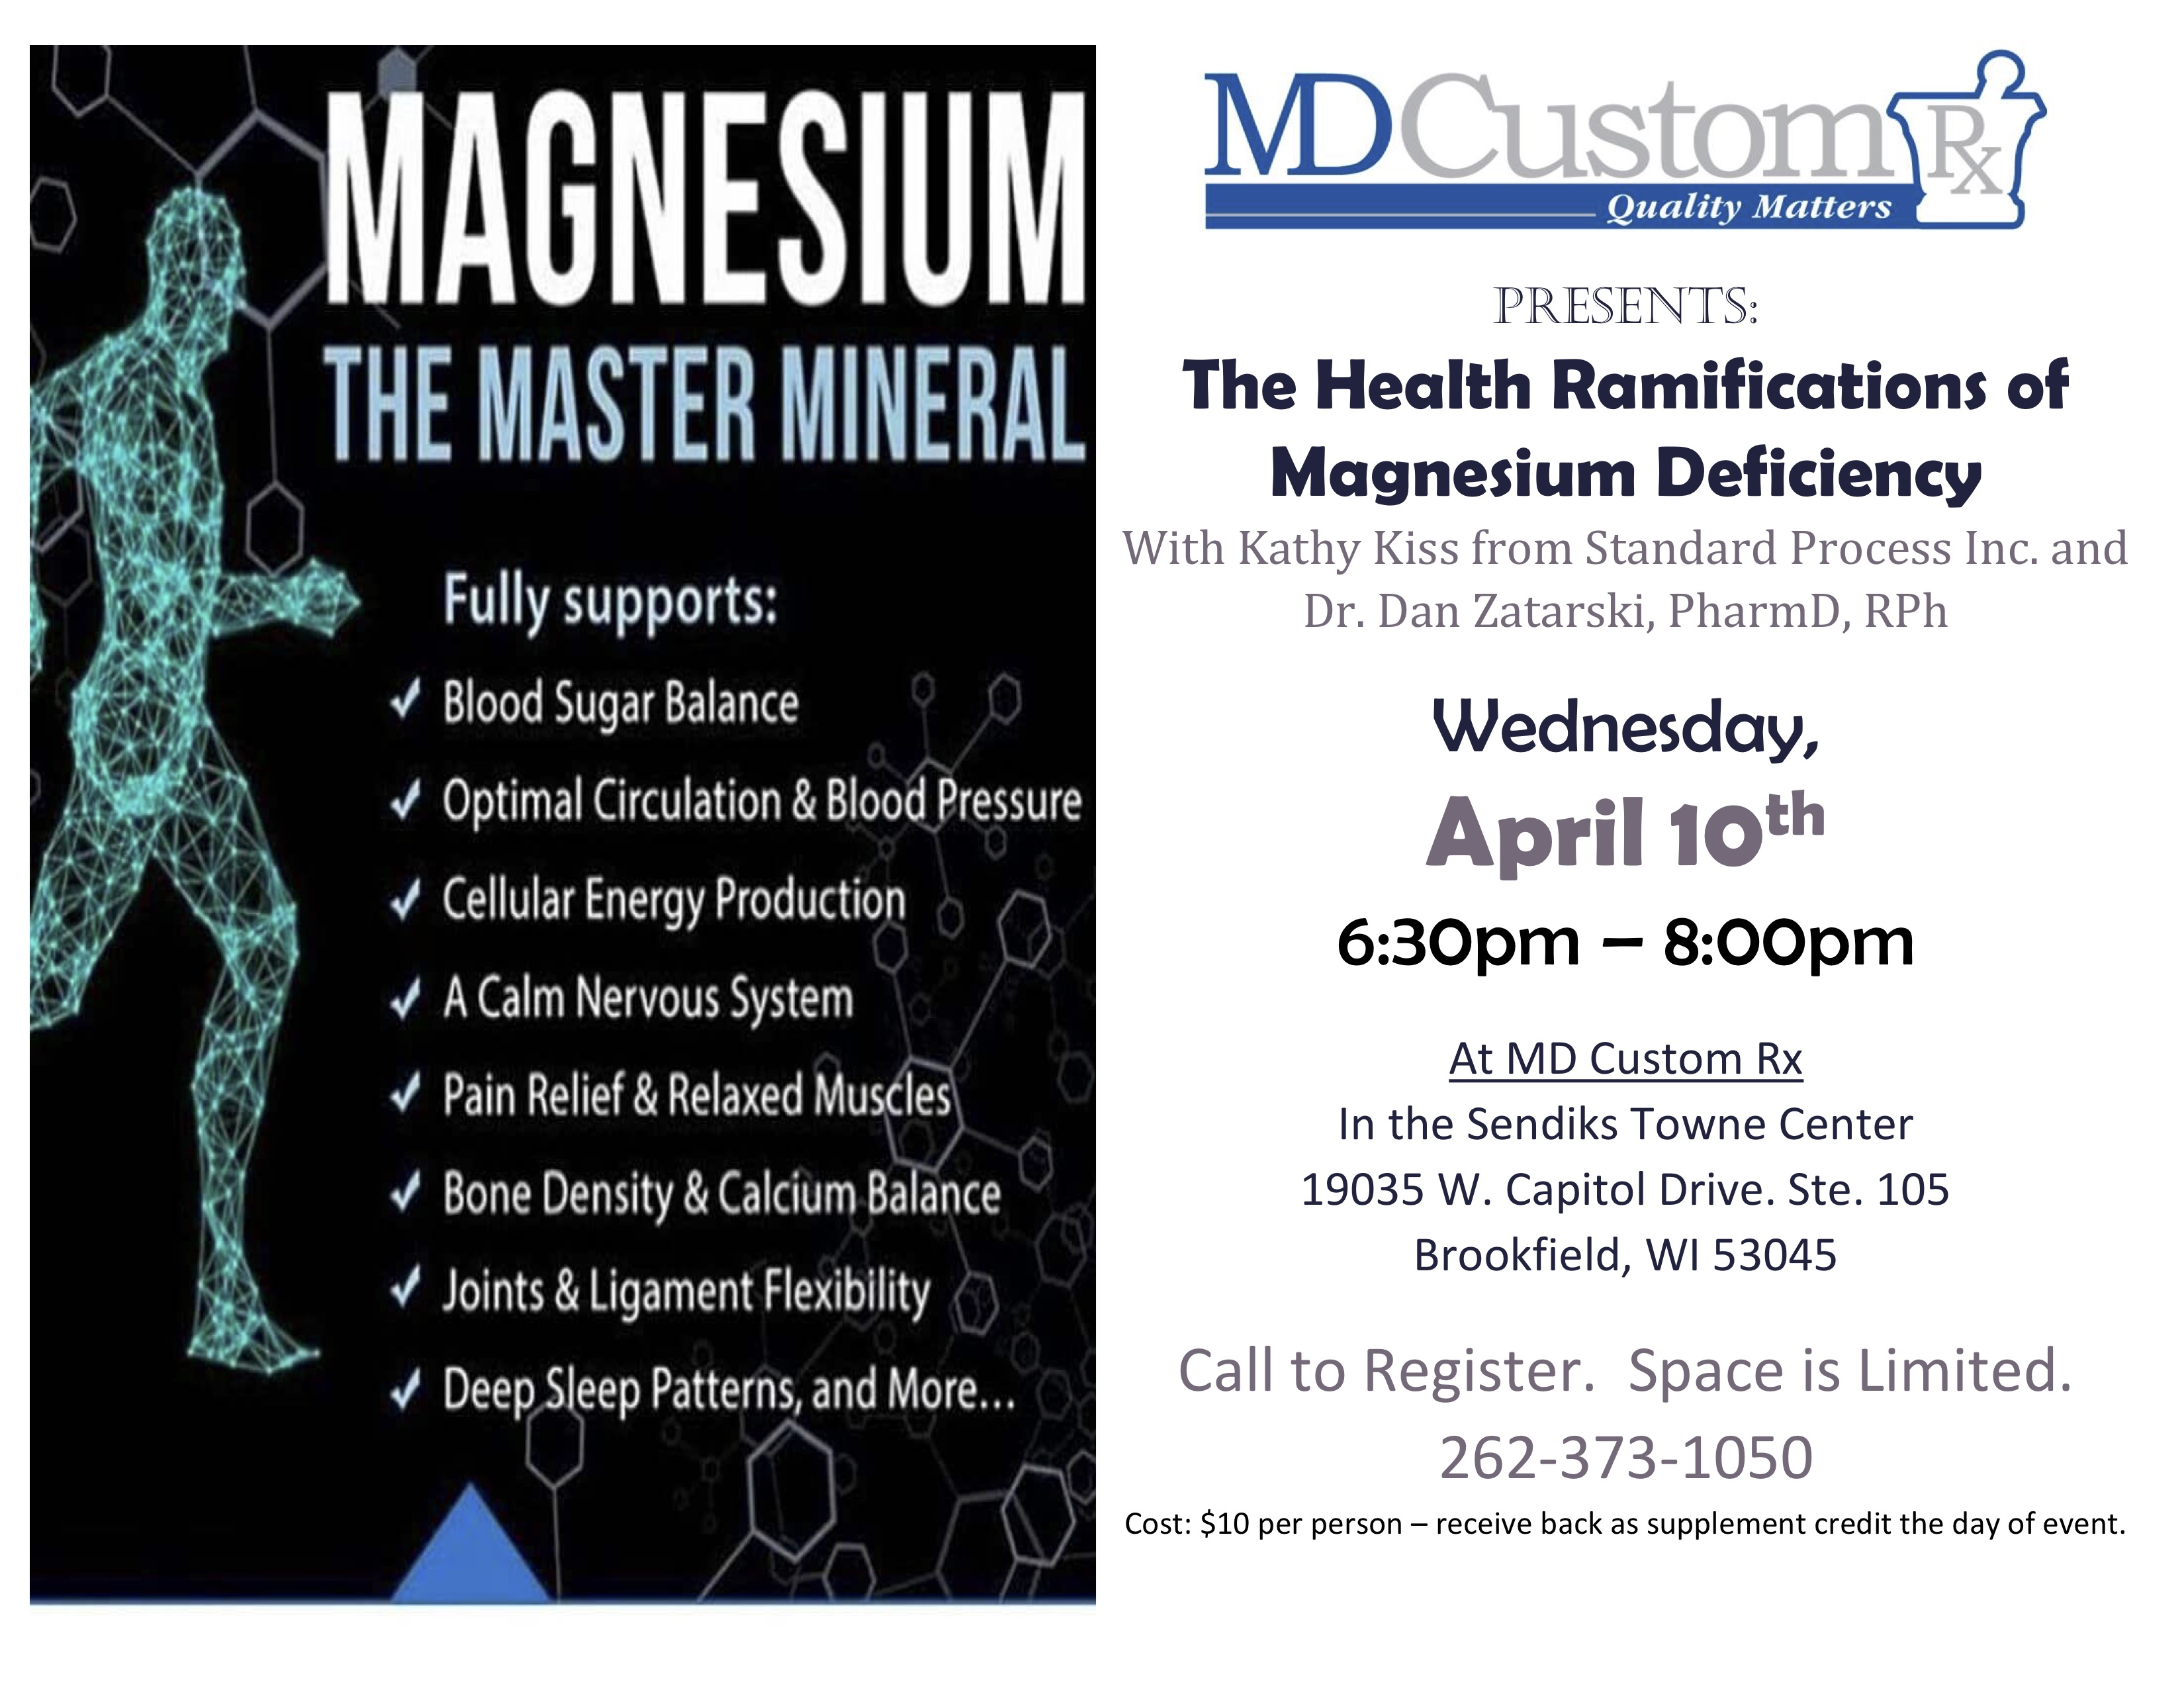 The Health Ramifications of Magnesium Deficiency